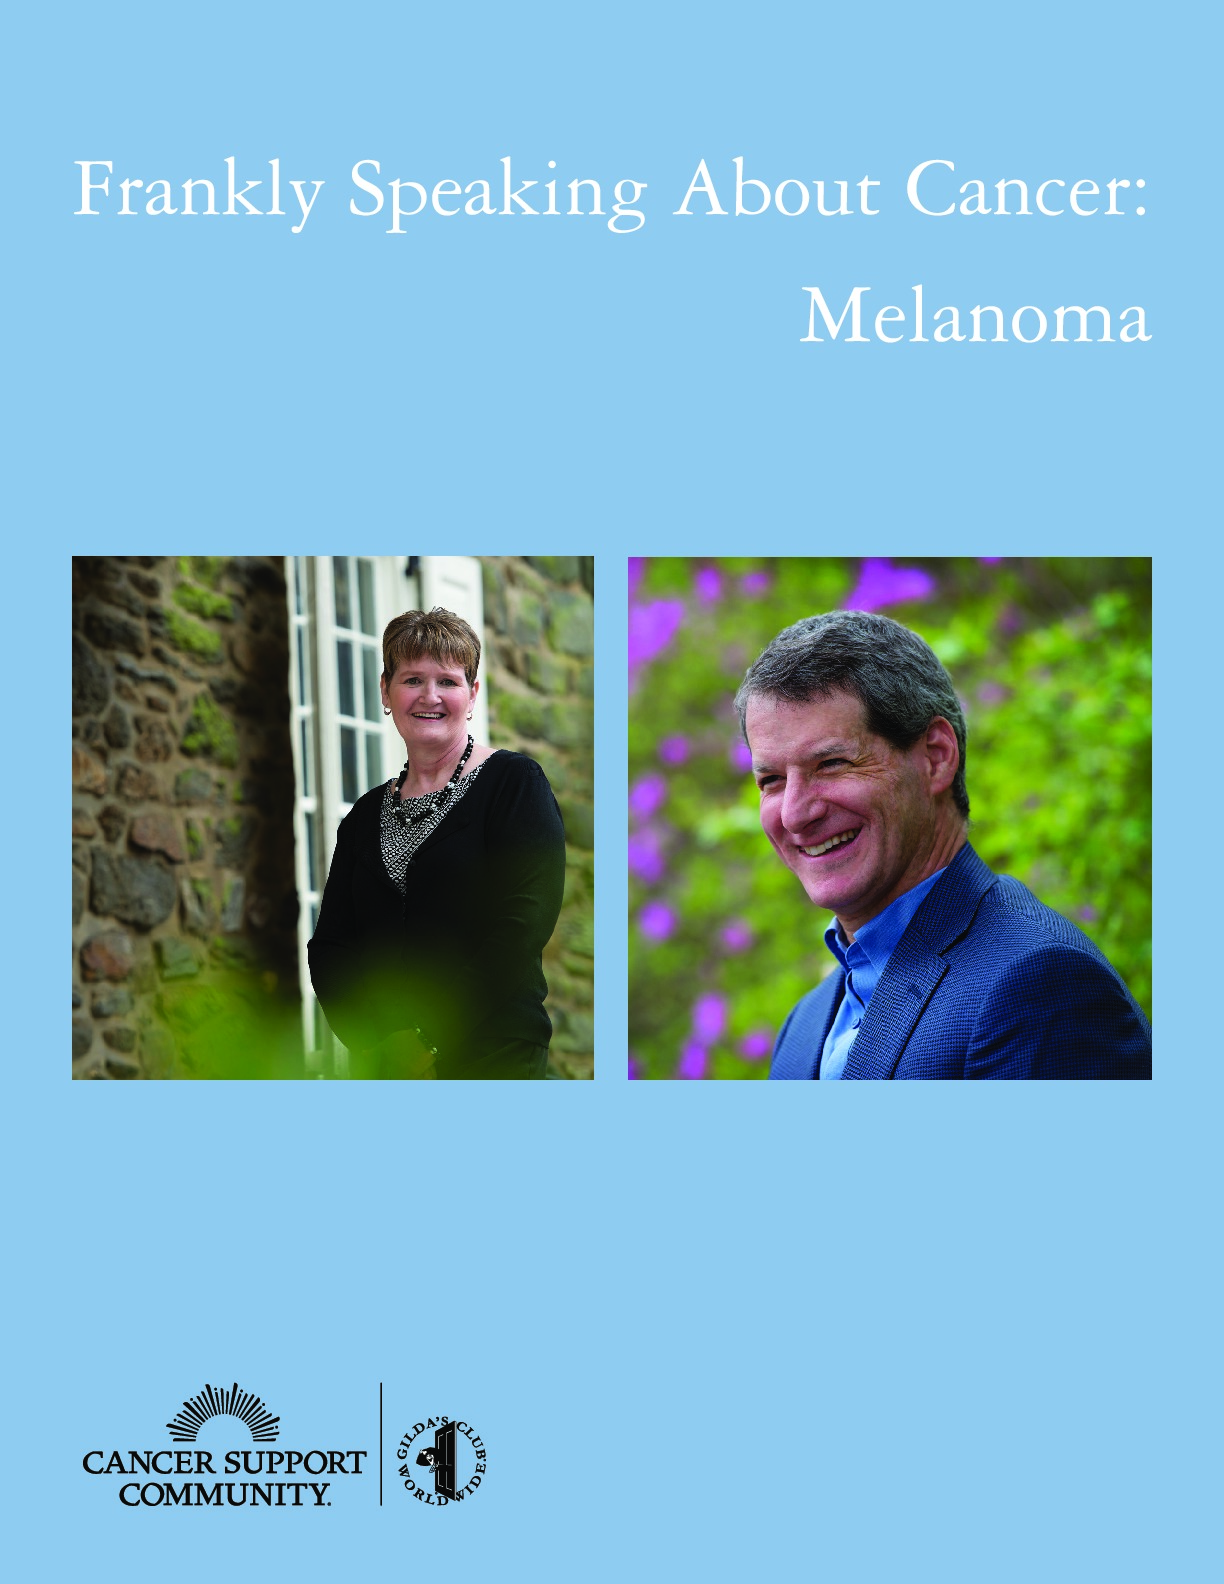 Frankly Speaking About Cancer: Melanoma